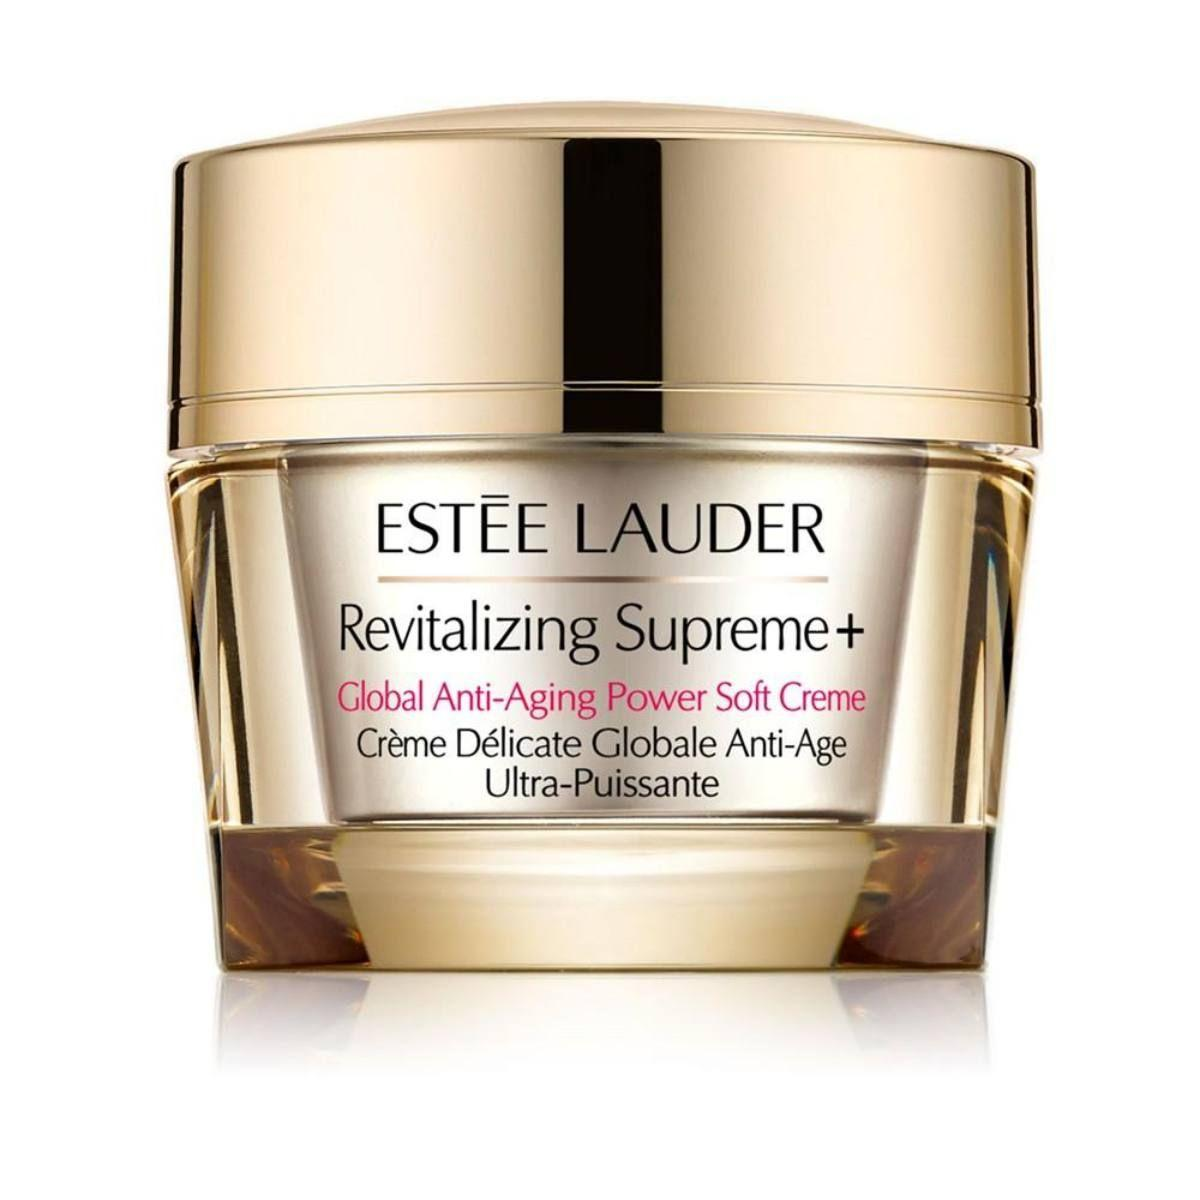 Estée Lauder Revitalizing Supreme + Global Anti-Aging Power Soft Crème